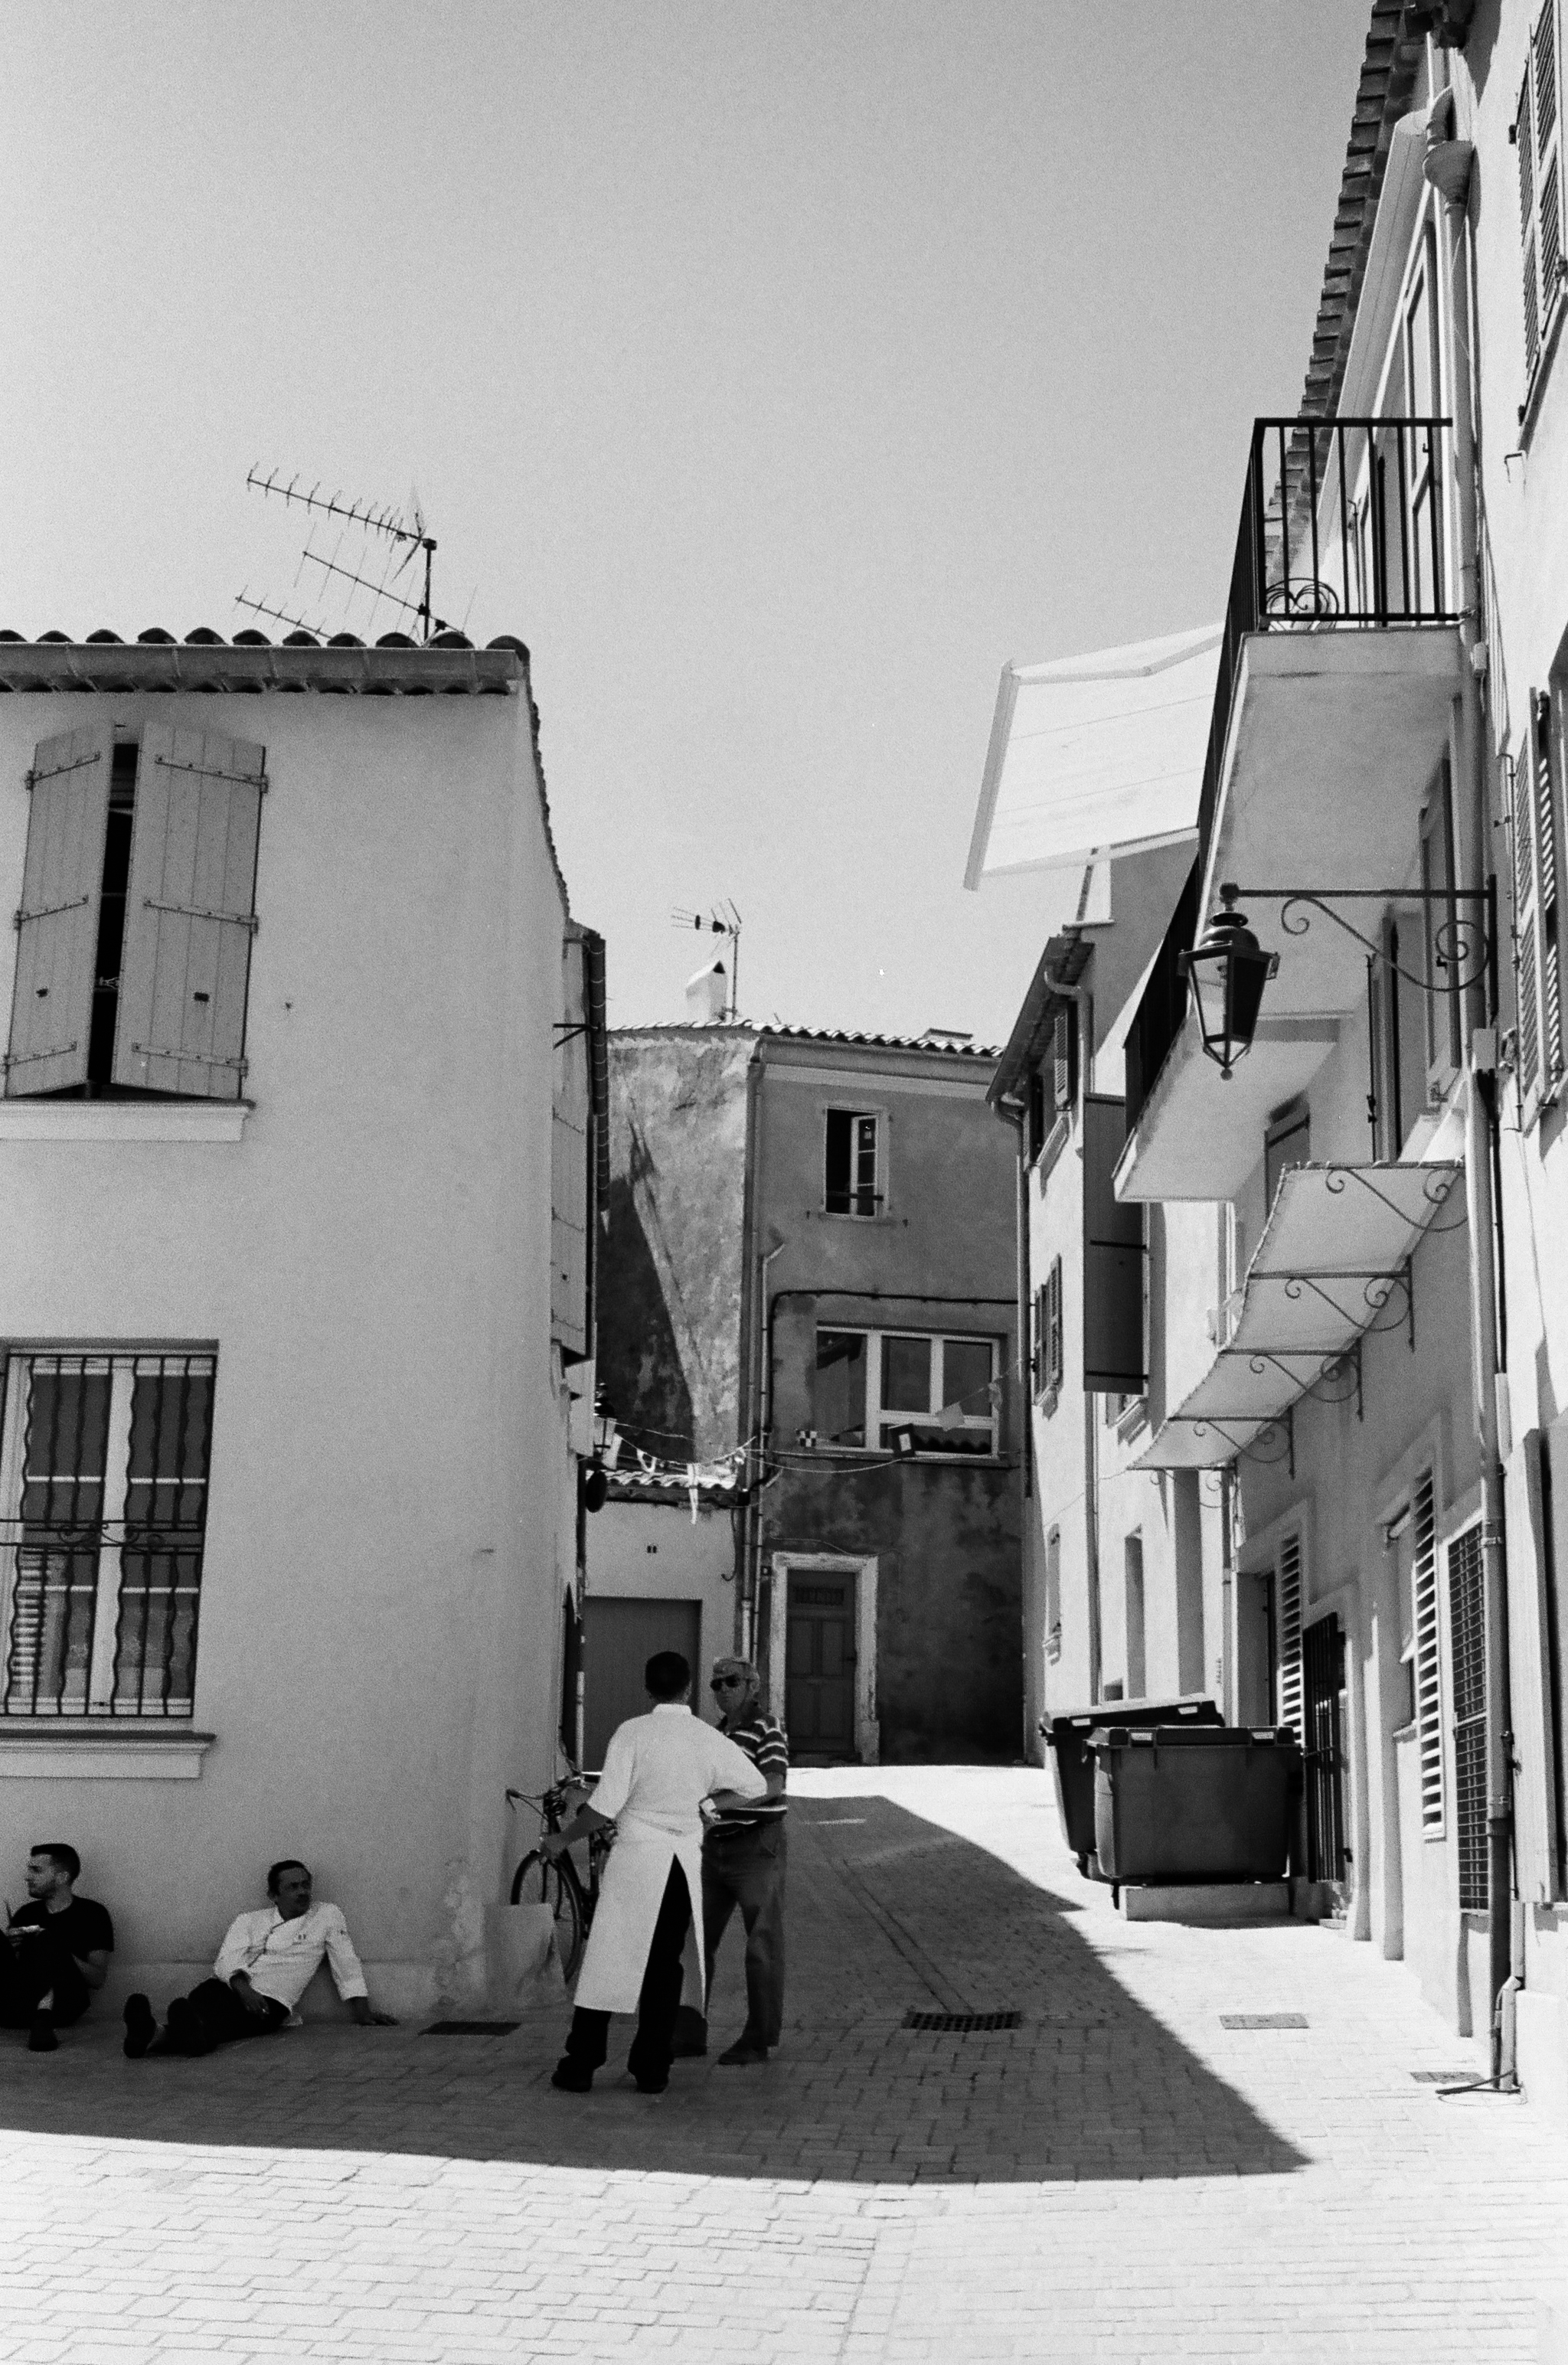 Restaurant workers take a break from the sun after a long lunch service, St. Tropez. France. 2016.